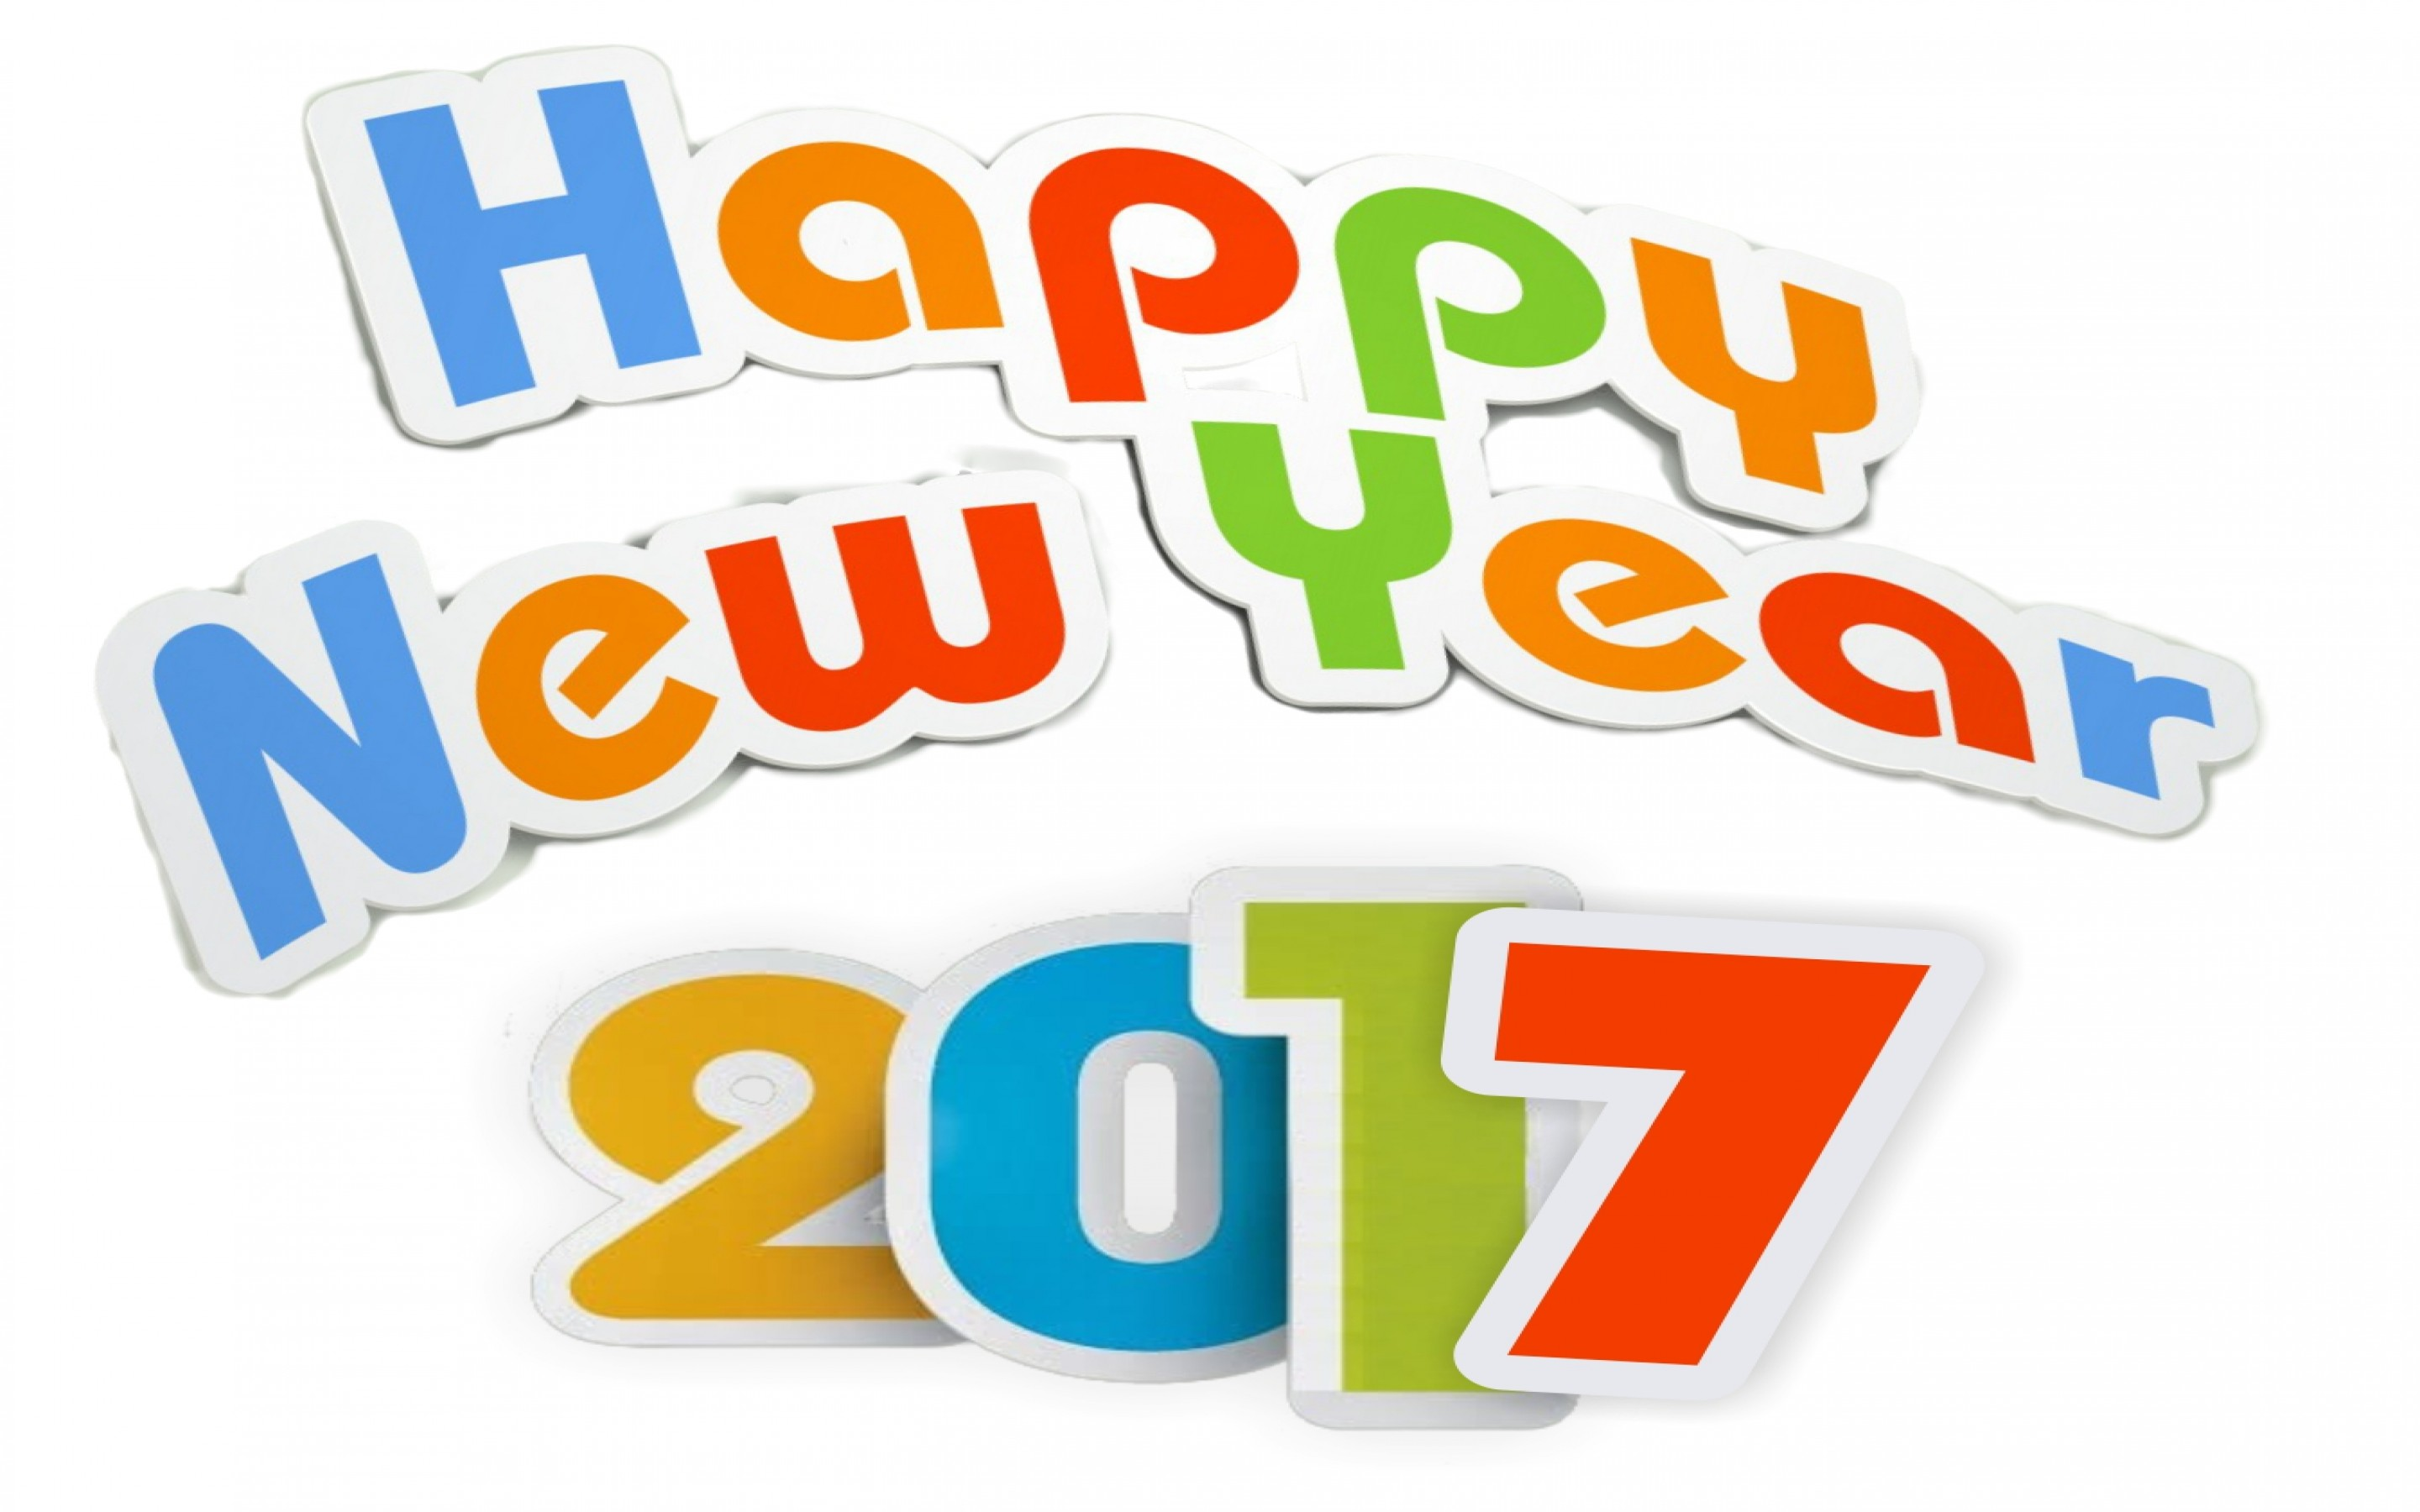 2017 New Year Png - 2017 Happy New Year wallpaper #28815 - Free Icons and PNG Backgrounds